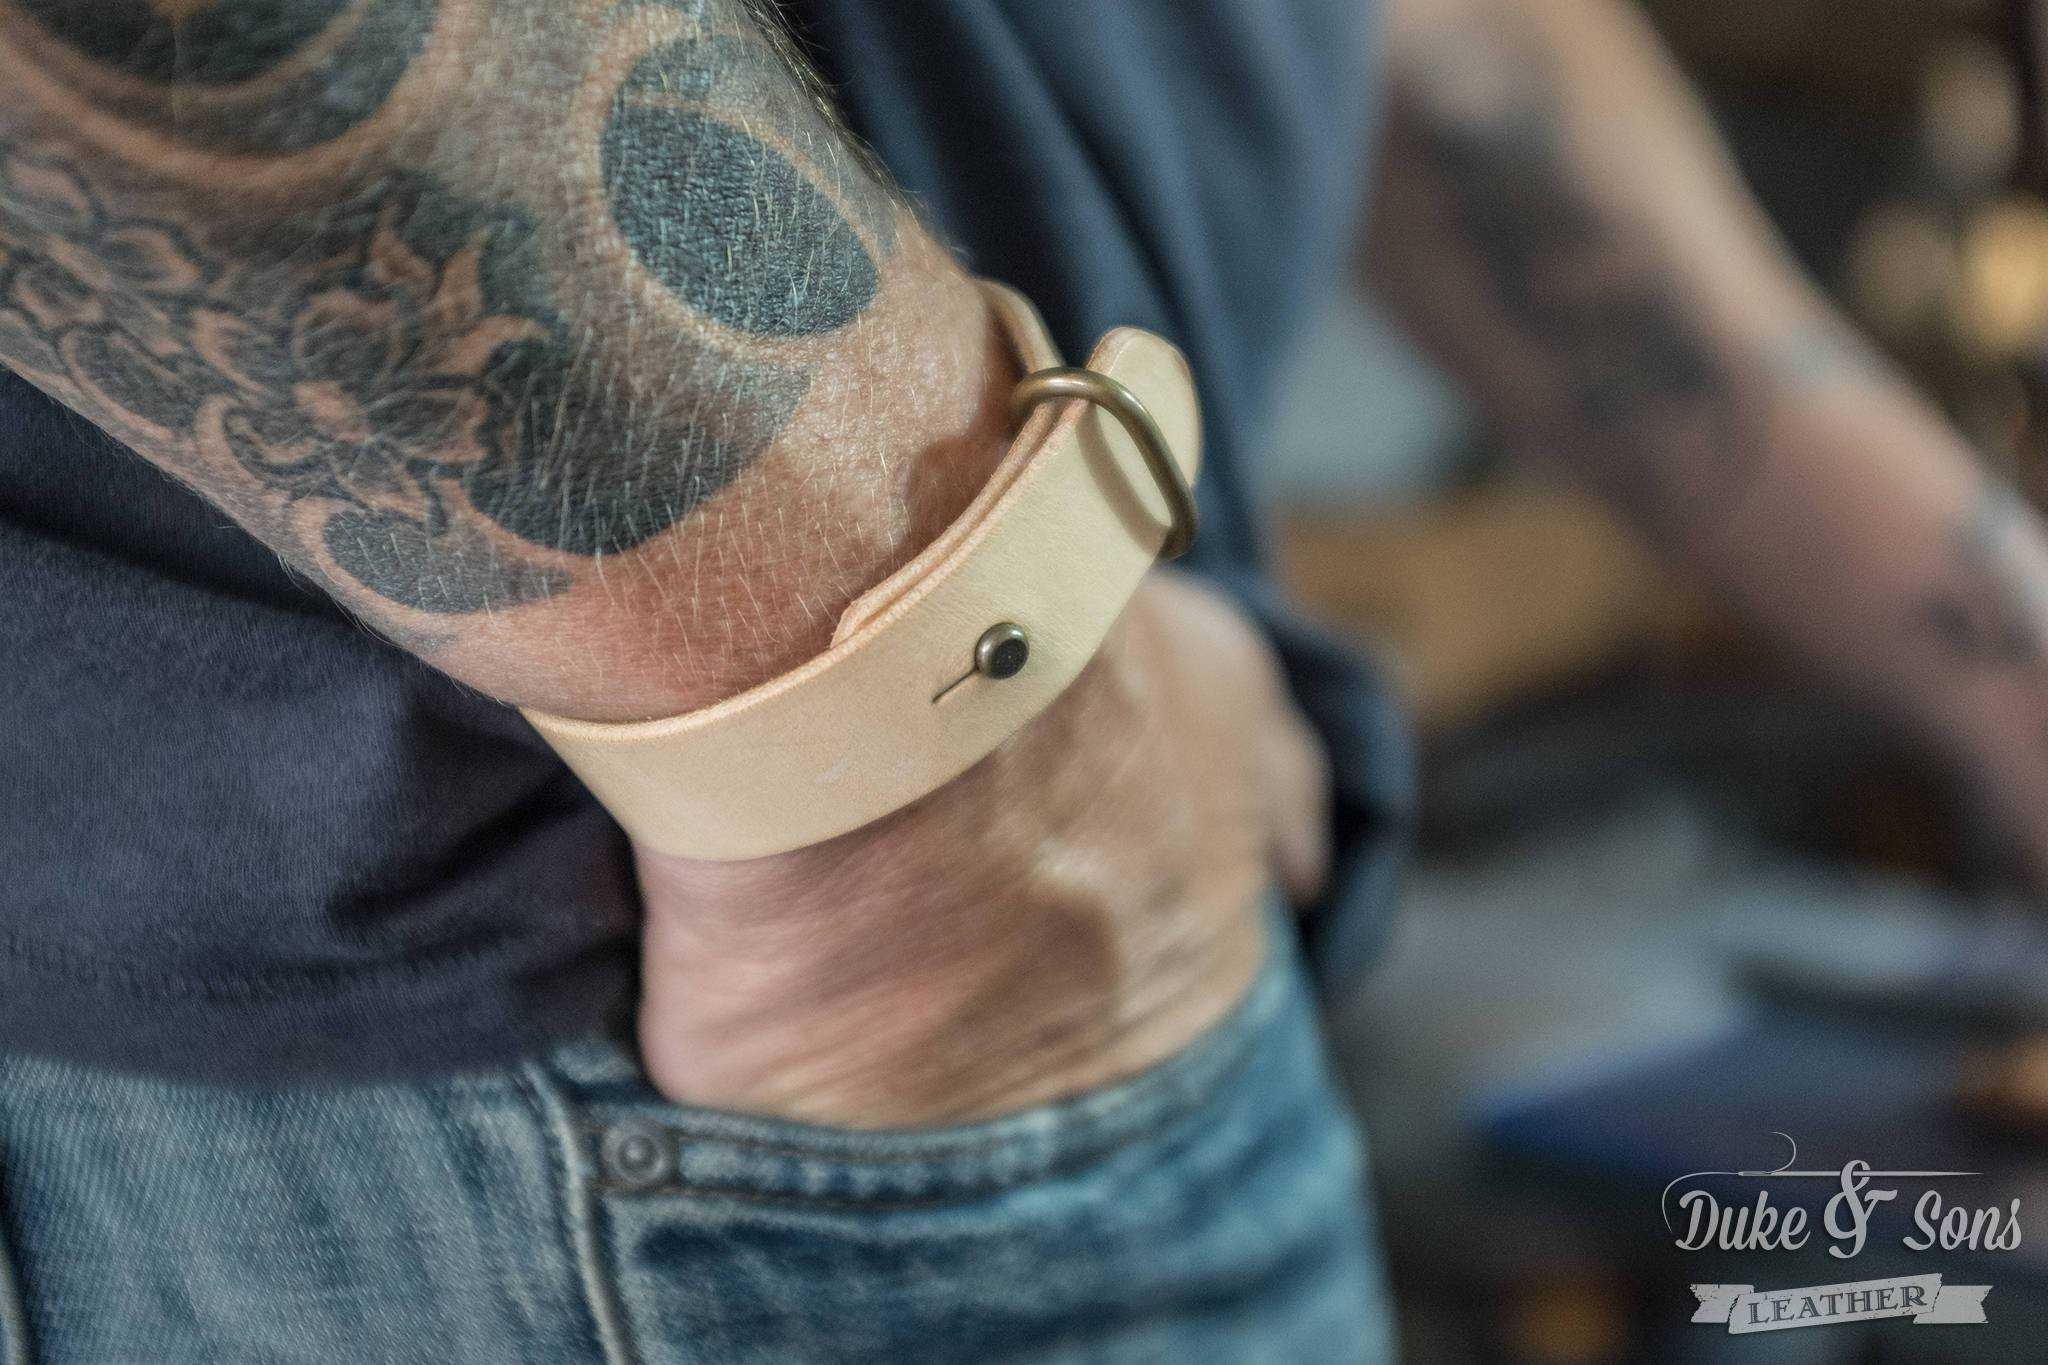 Bracelet, classic Bulls leather. | Duke & Sons Leather